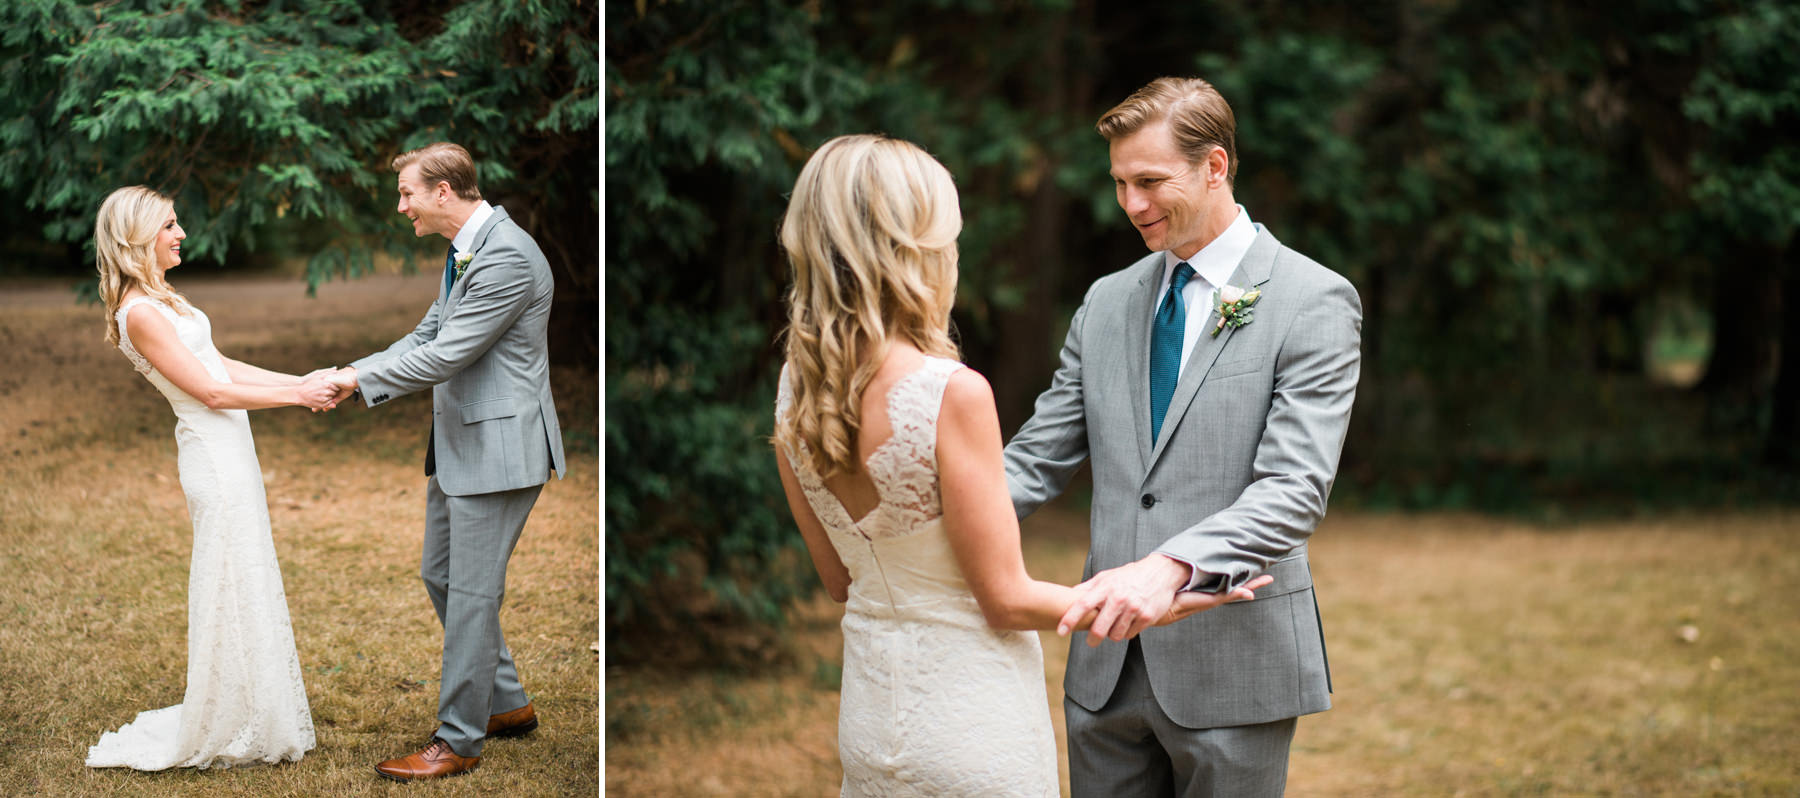 174-wedding-first-look-at-lincoln-park-in-west-seattle.jpg